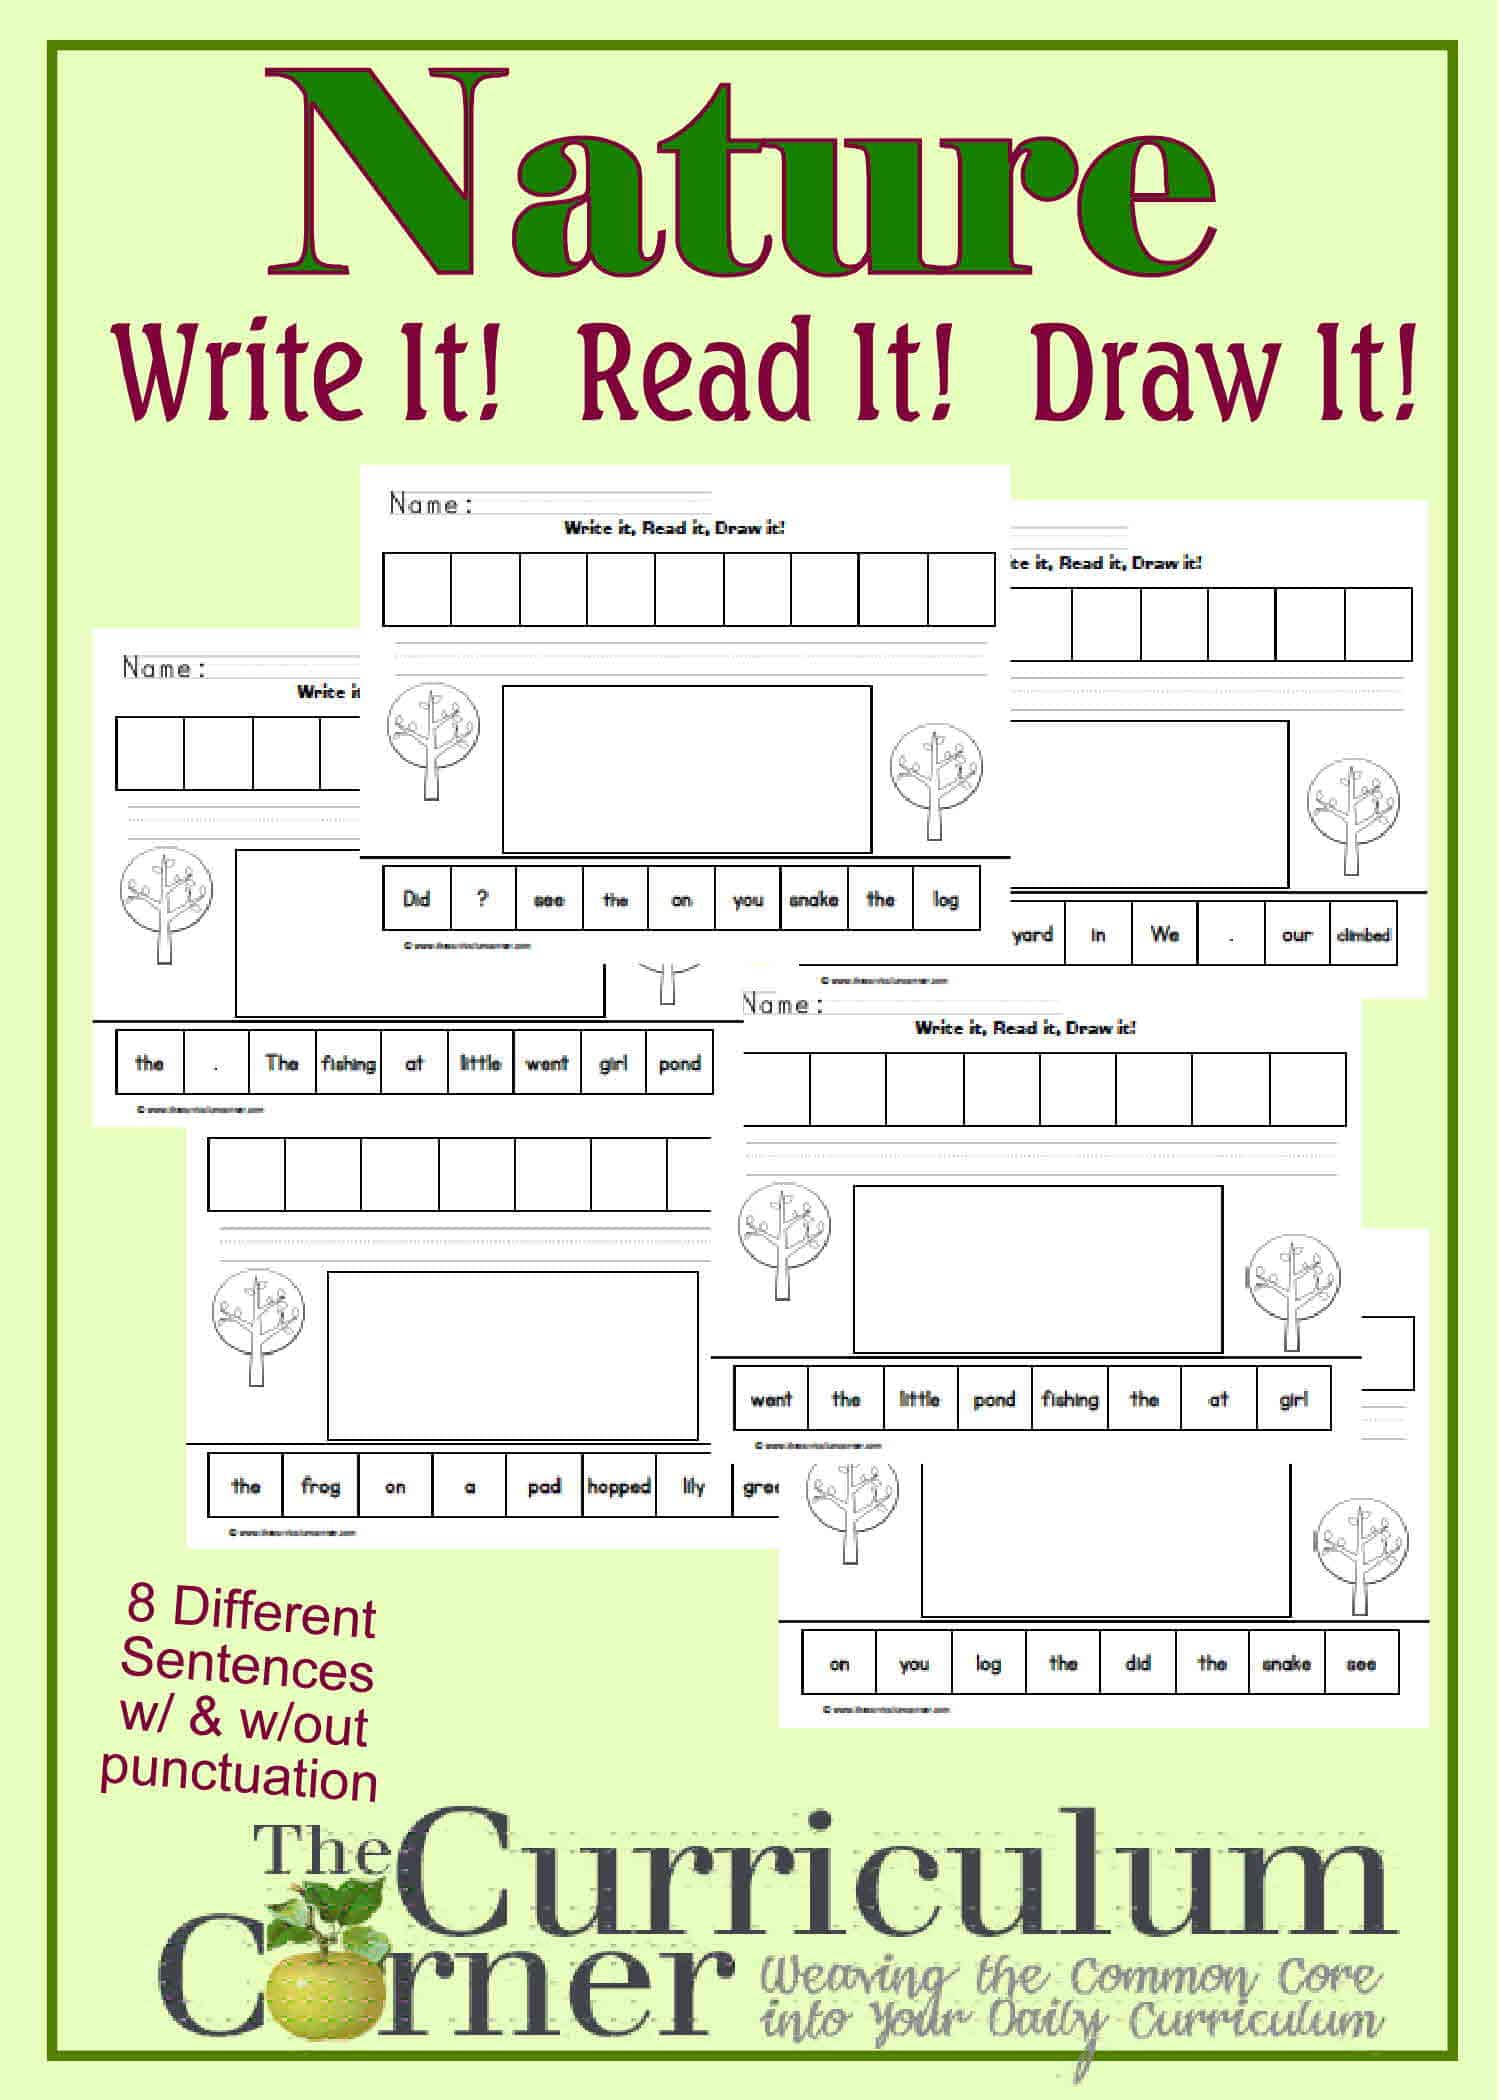 Nature Themed Write! Read! Draw!